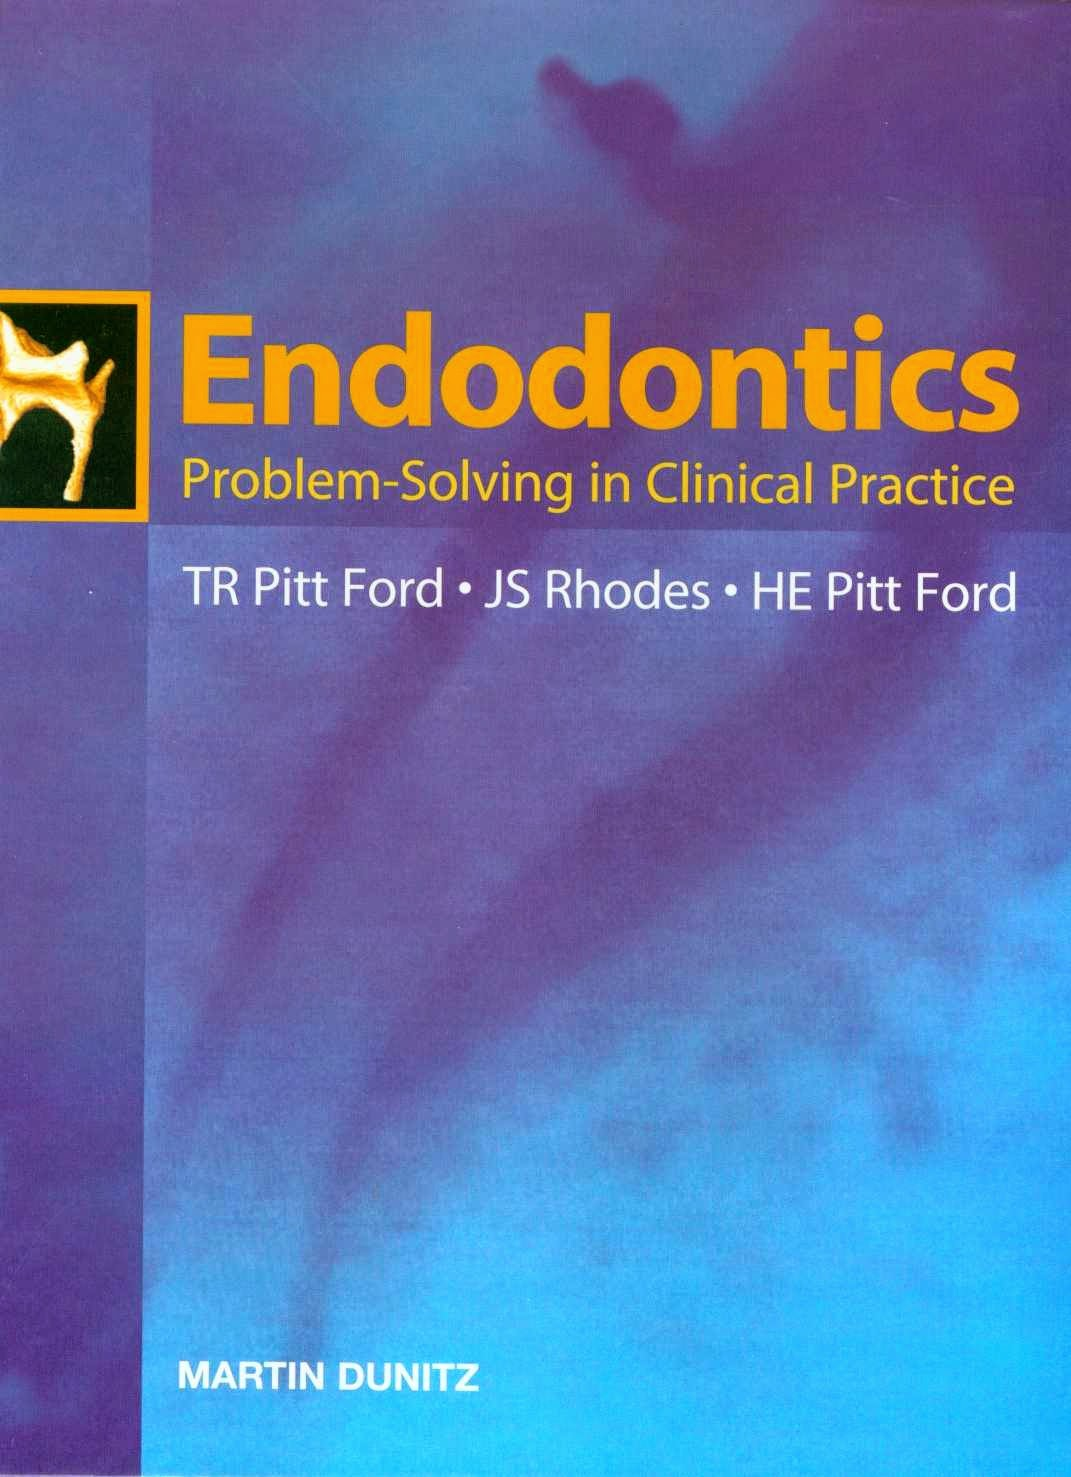 Endodontics- Problem-Solving in Clinical Practice - TR Pitt Ford,JS Rhodes,HE Pitt Ford